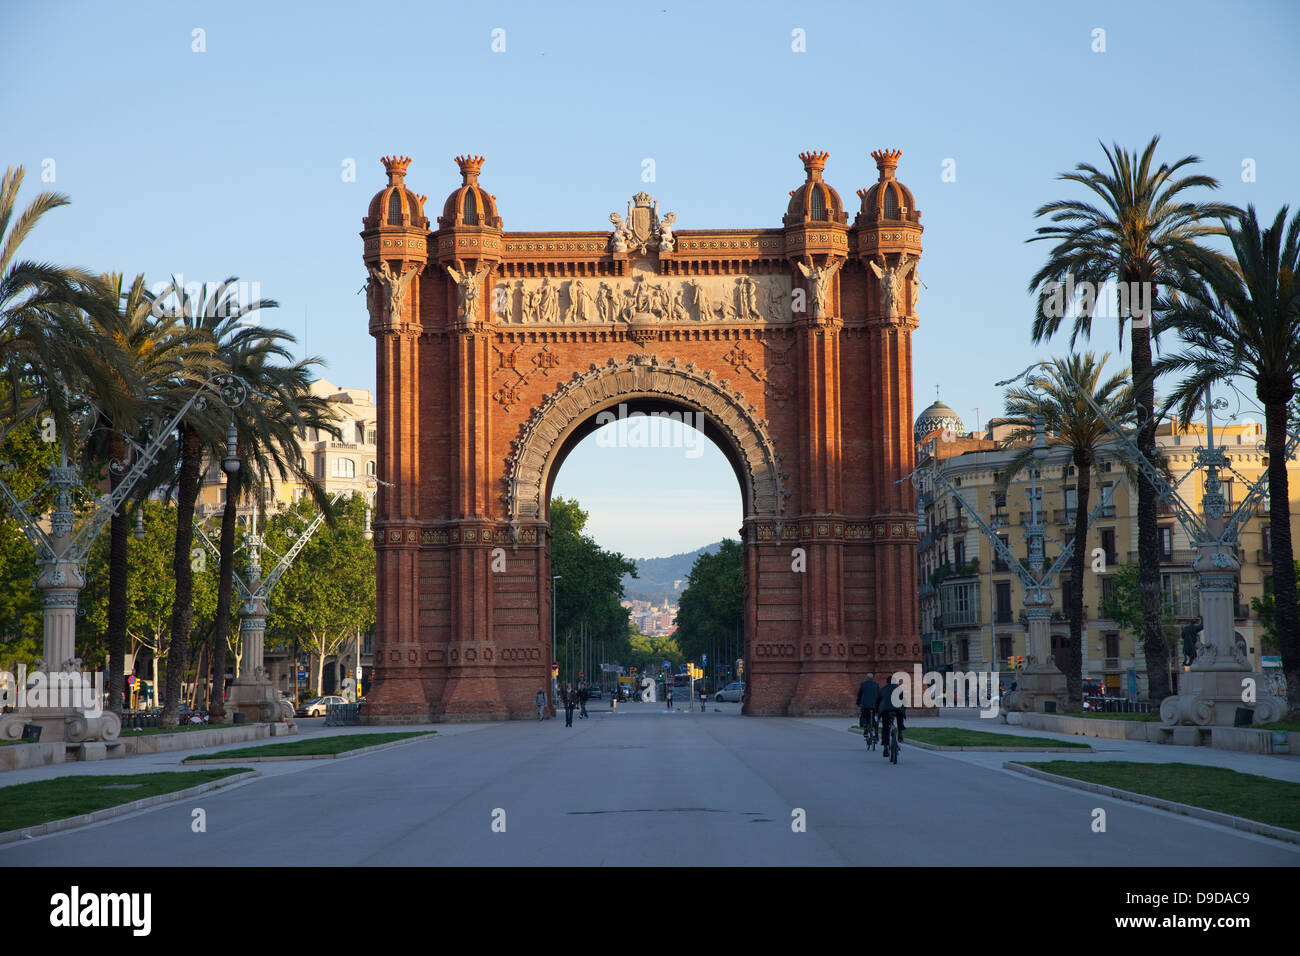 Famous Triumph Arch of Barcelona (Spain) at Sunrise - Stock Image